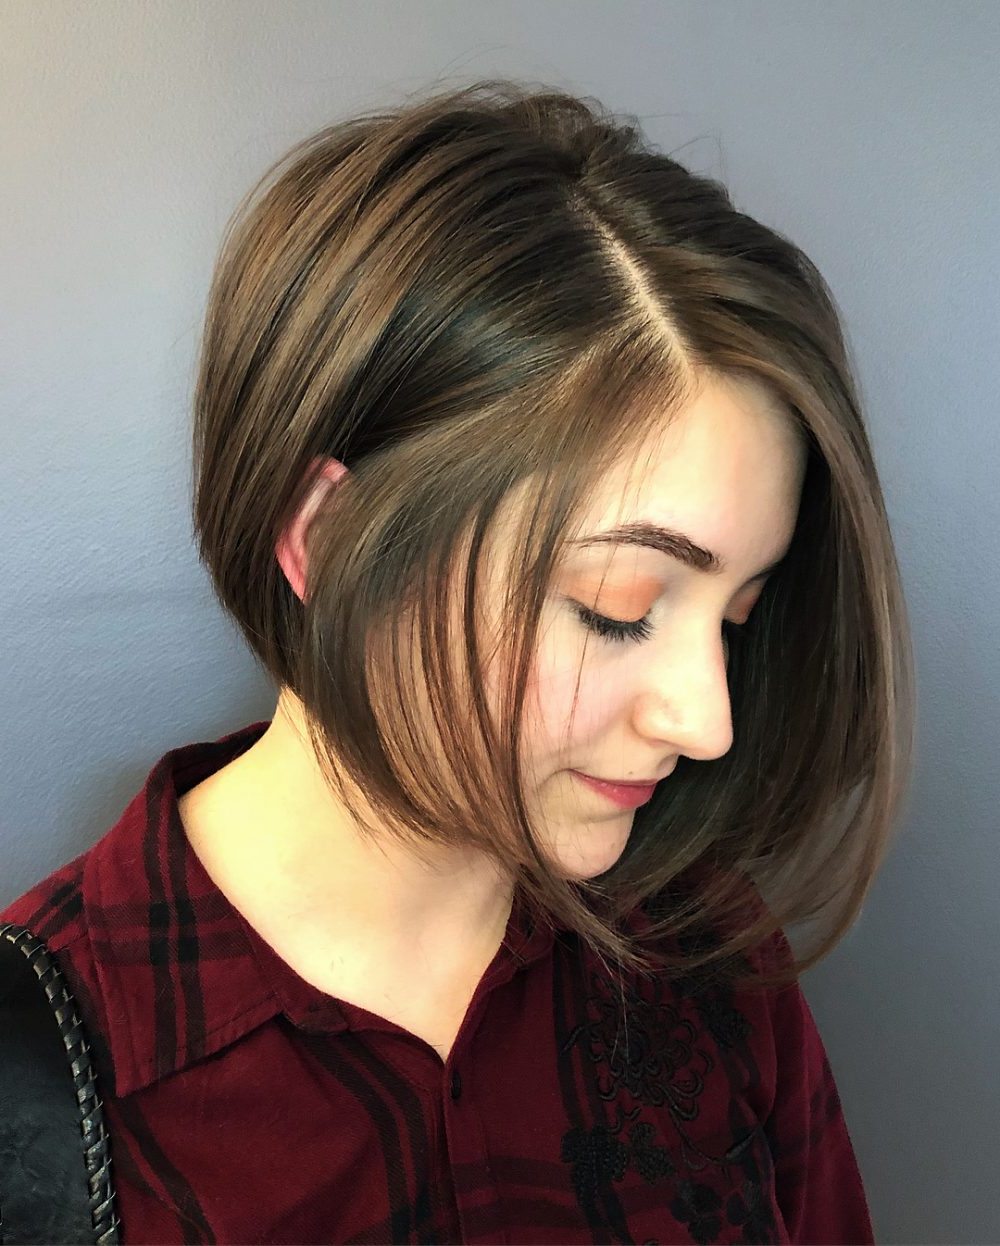 33 Flattering Short Hairstyles For Round Faces In 2018 Inside Edgy Short Hairstyles For Round Faces (View 3 of 25)